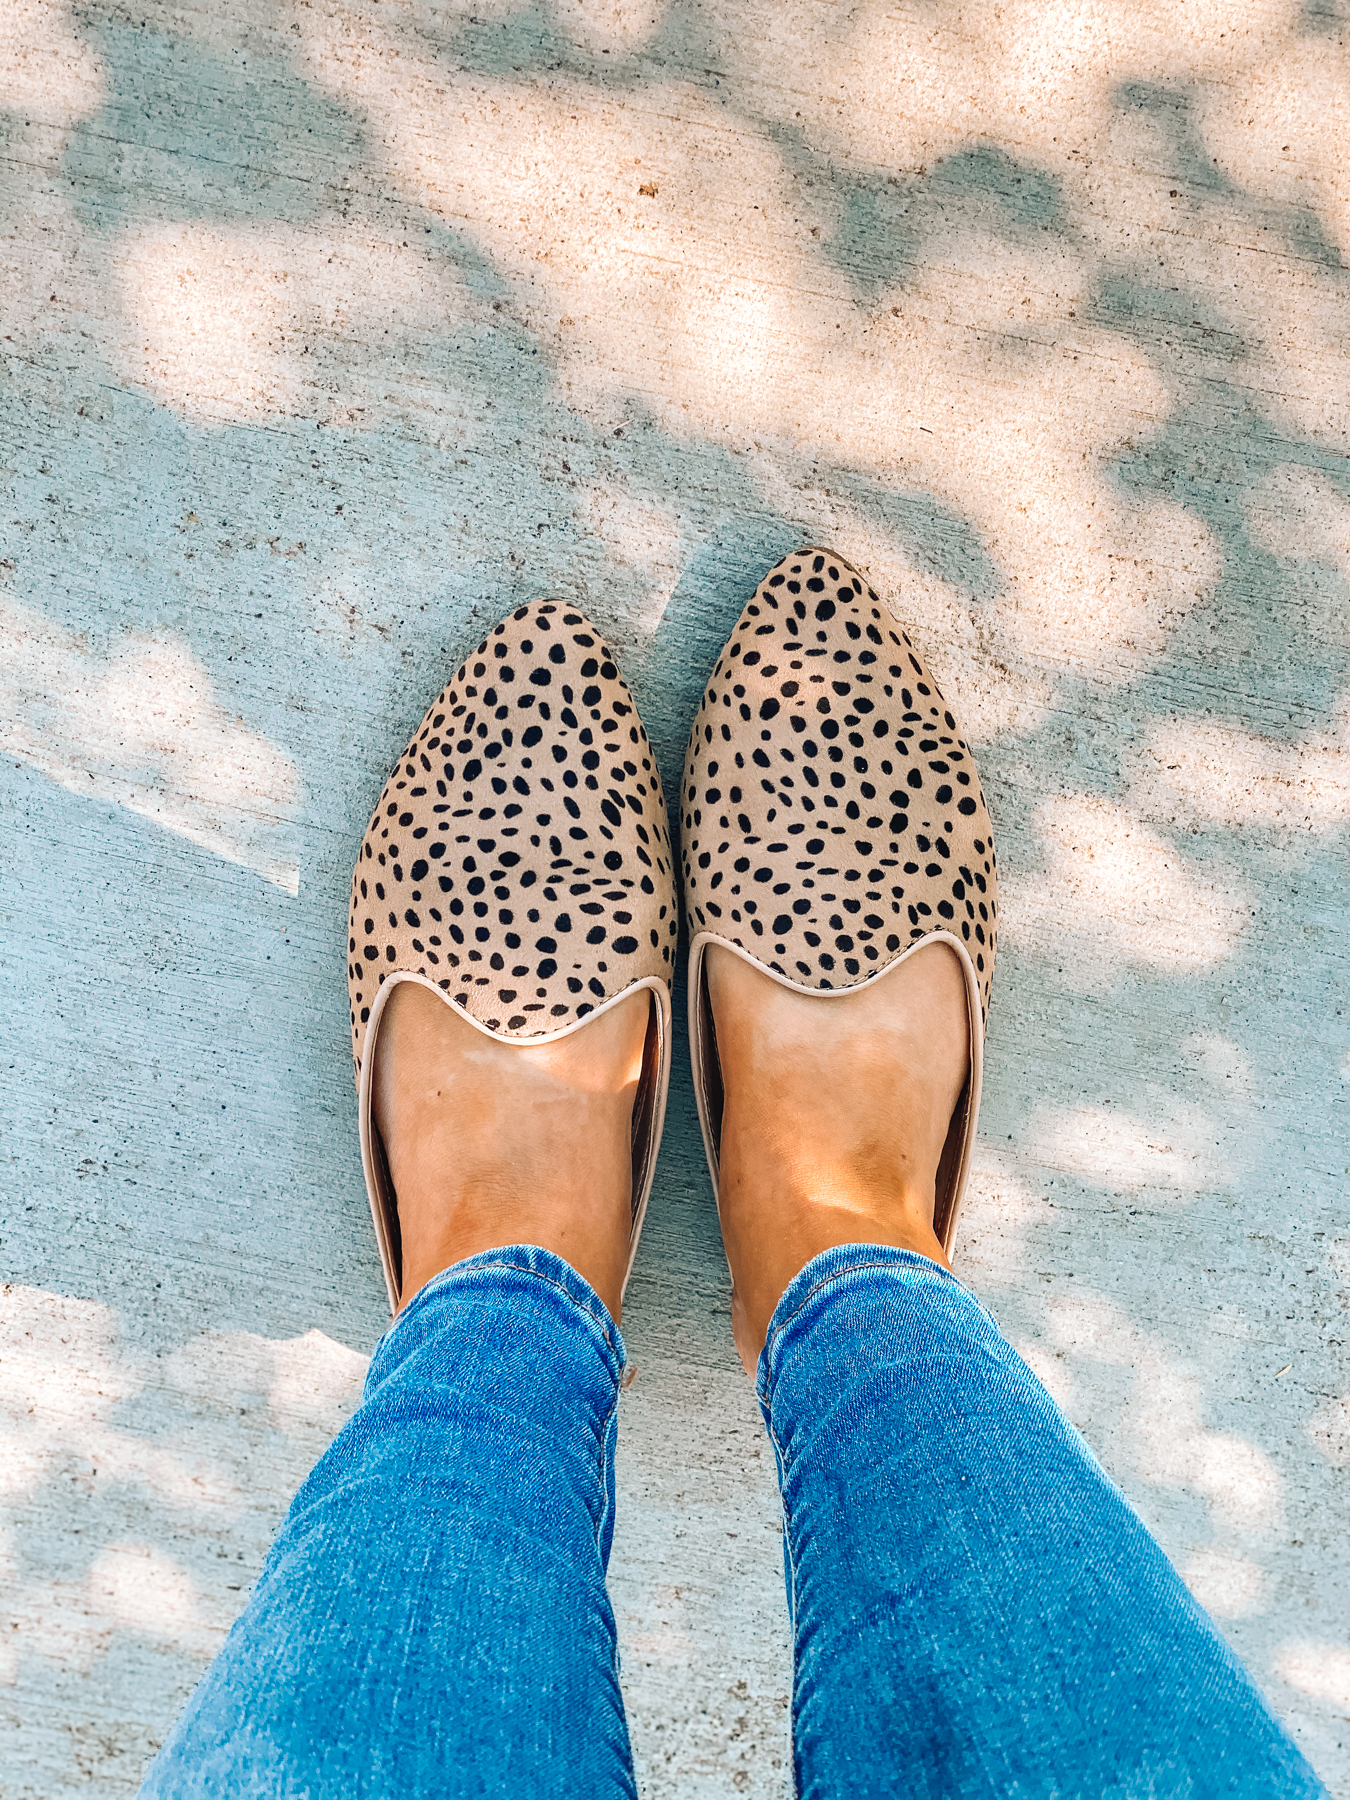 Overhead view of Emily from One Lovely Life's leopard mules from Target and jeans from American Eagle